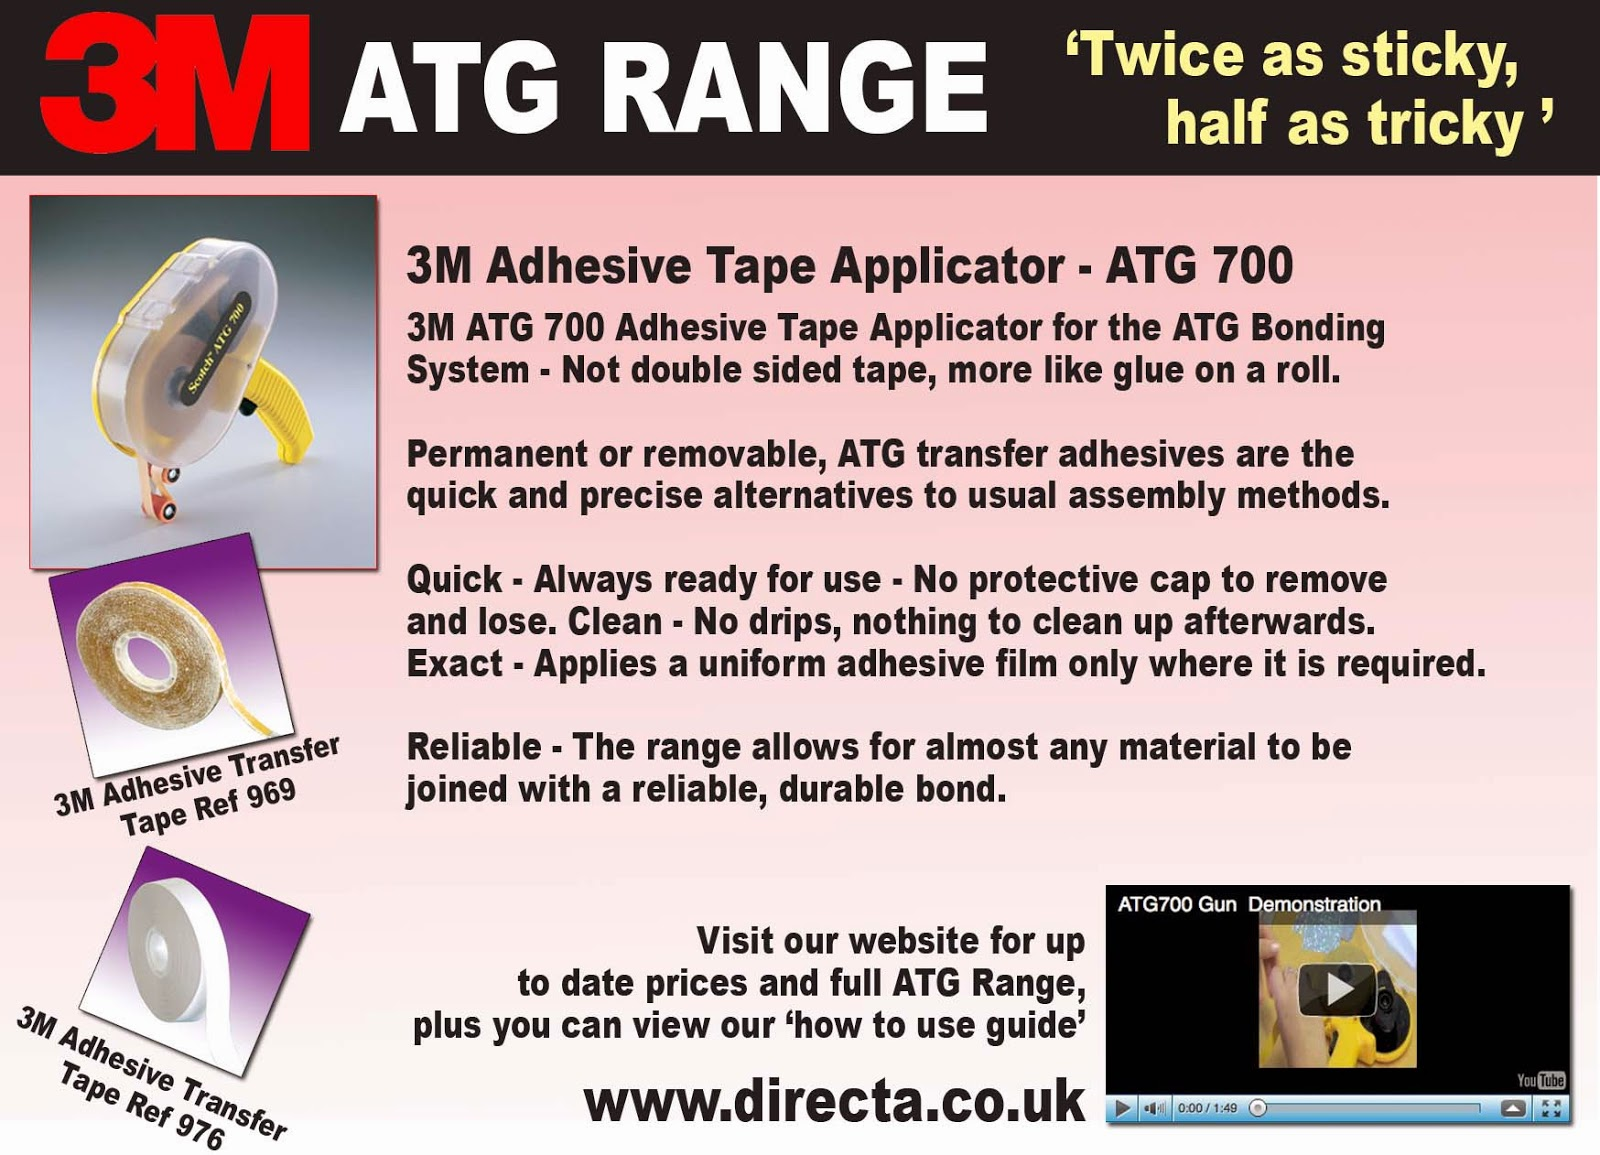 http://www.directa.co.uk/index.php?route=product/product&product_id=2273&search=atg